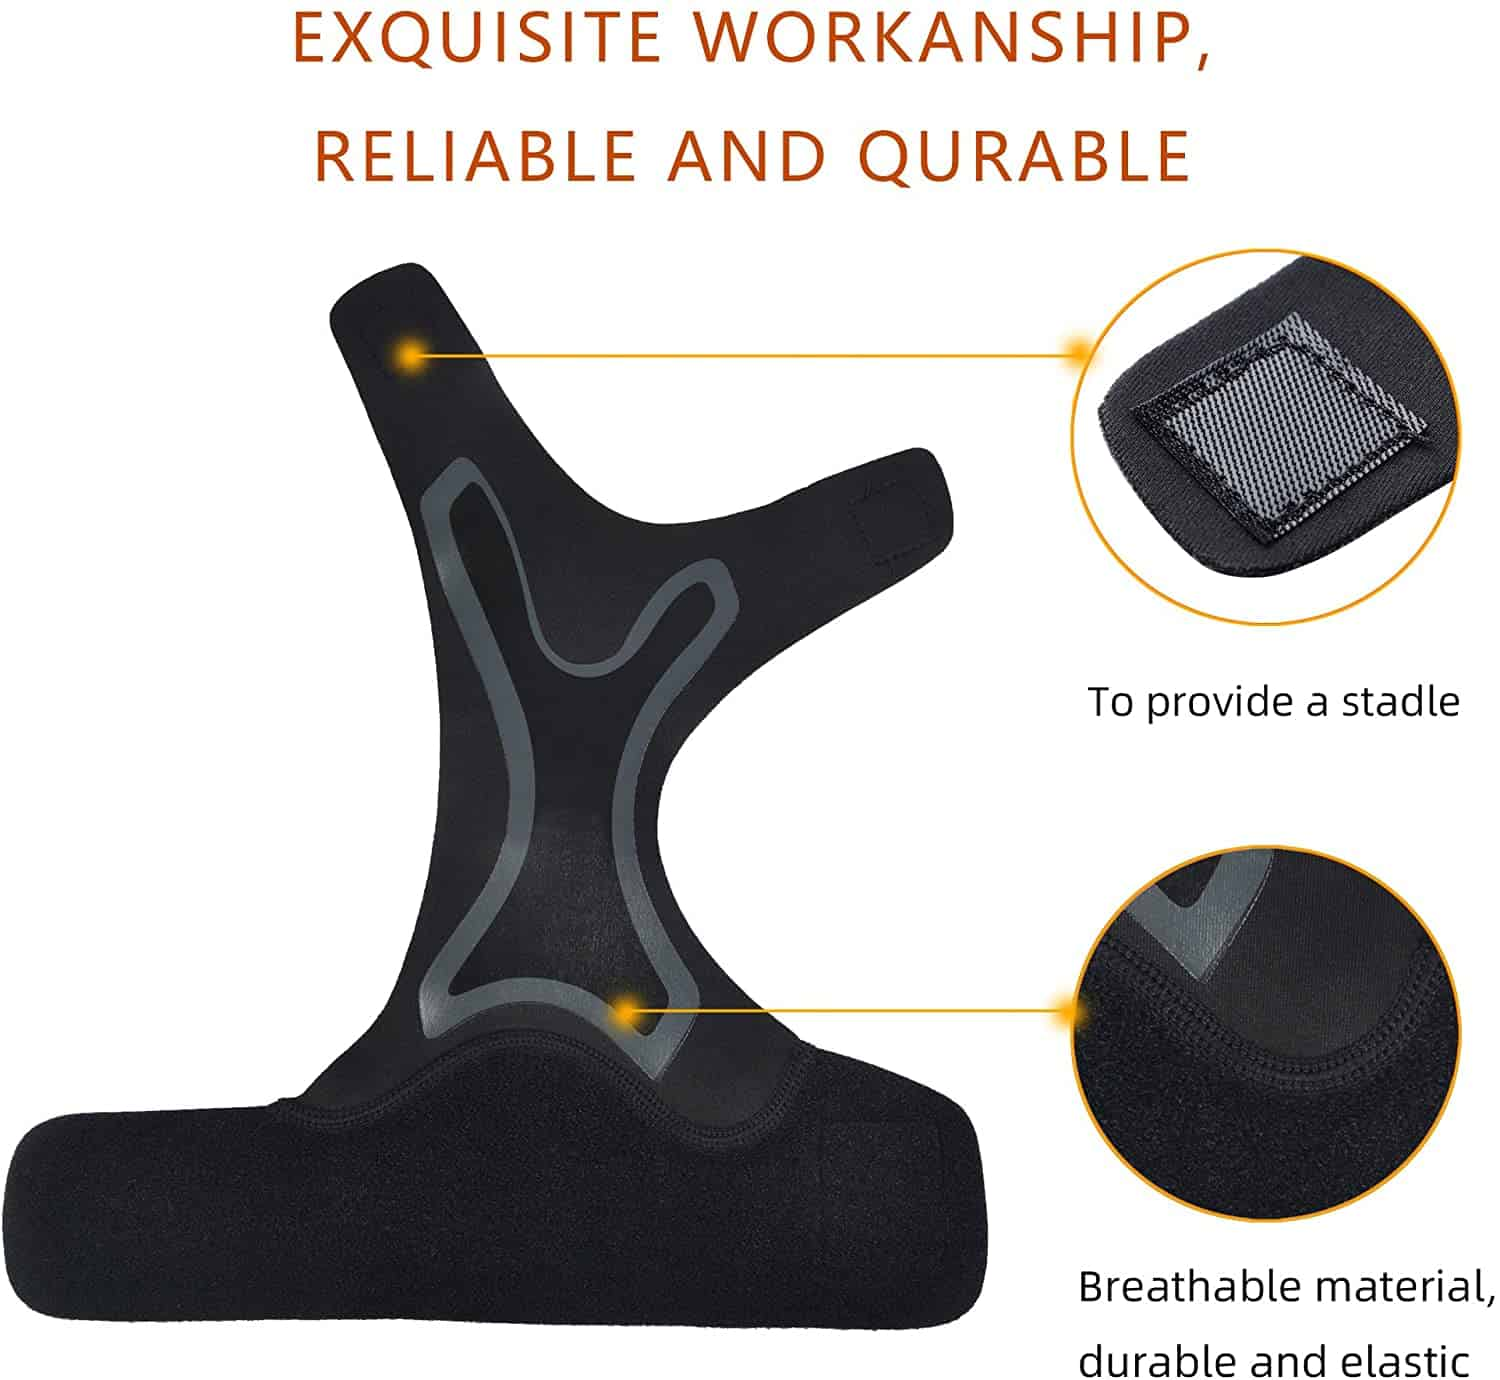 Ankle Support with Adjustable Strap, ankle support, ankle guard, ankle brace, ankle brace for sprain, aircast ankle brace, ankle support brace, ankle support strap, best ankle support